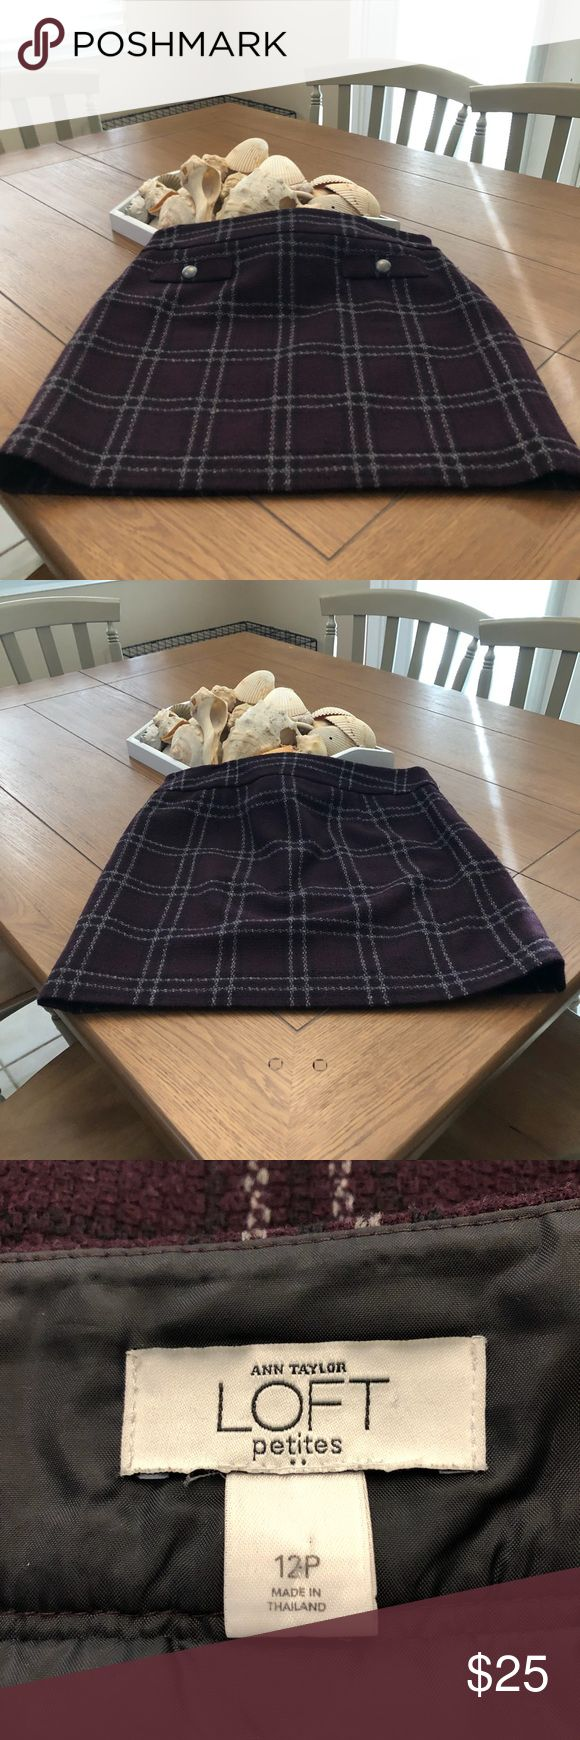 Cute Winter Mini Skirt This super cute skirt is great for work or going out. Works with a gray sweater or black sweater. Dry clean only. LOFT Skirts Mini